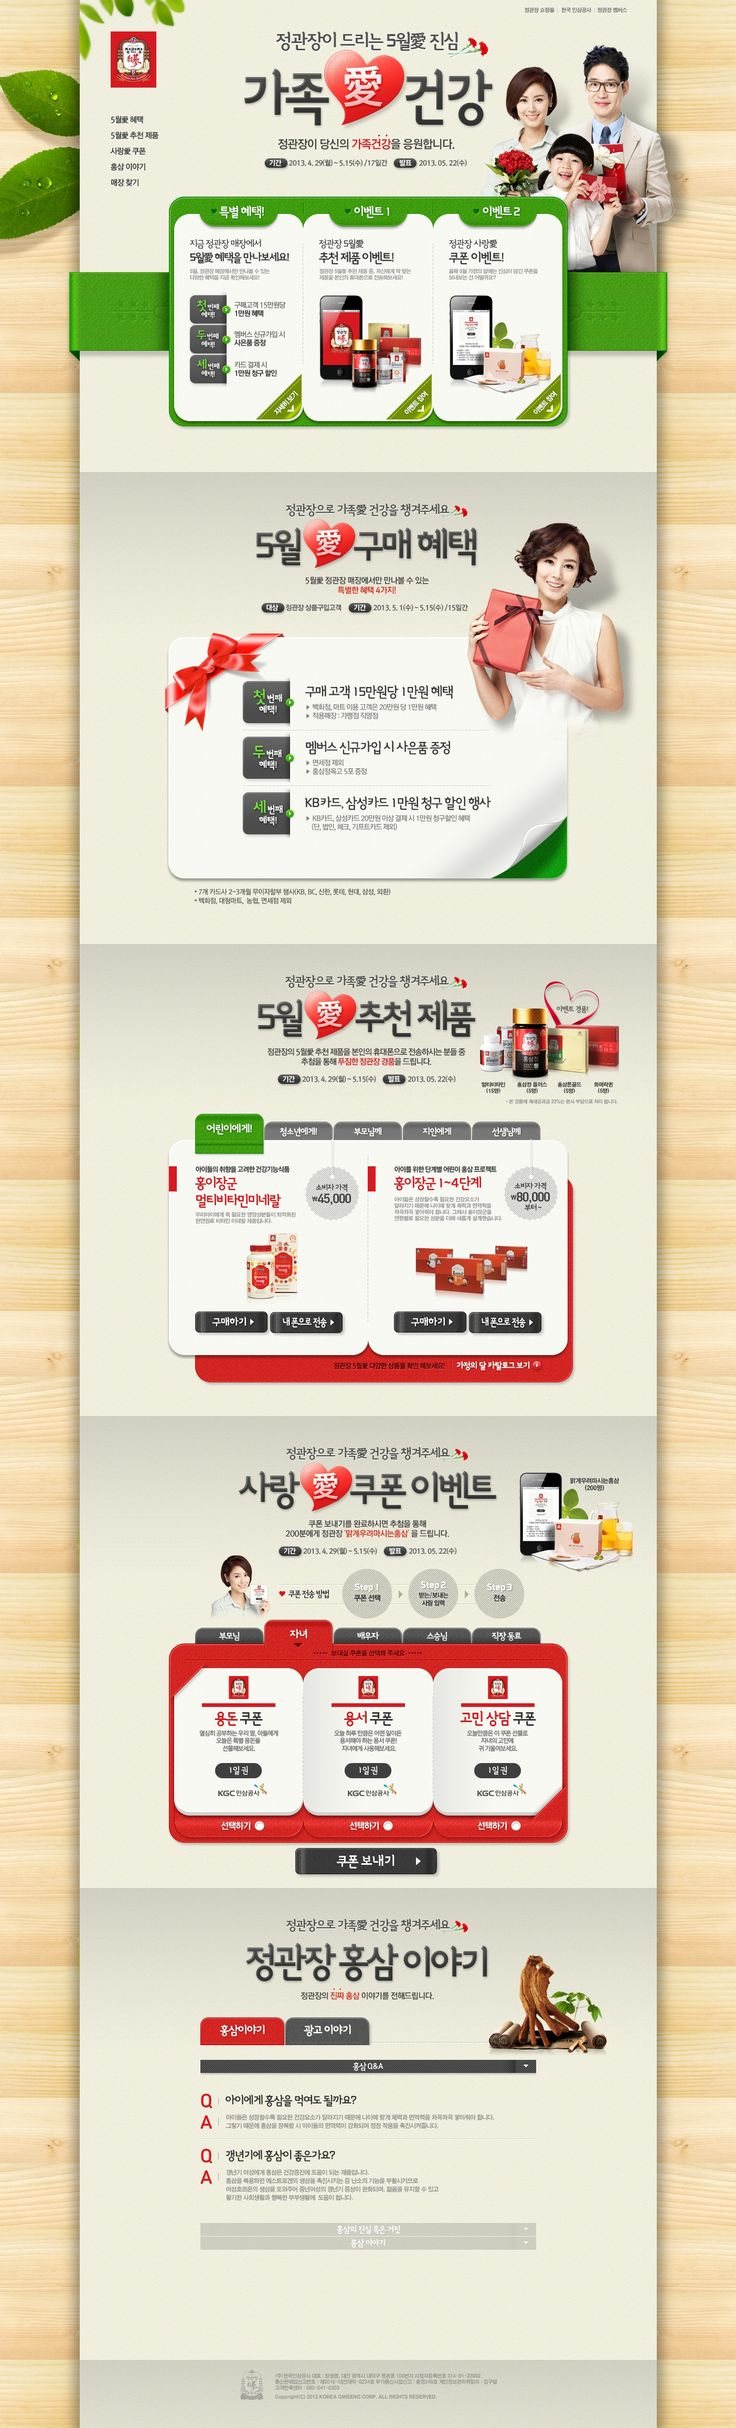 DCafein Website - KGC Event